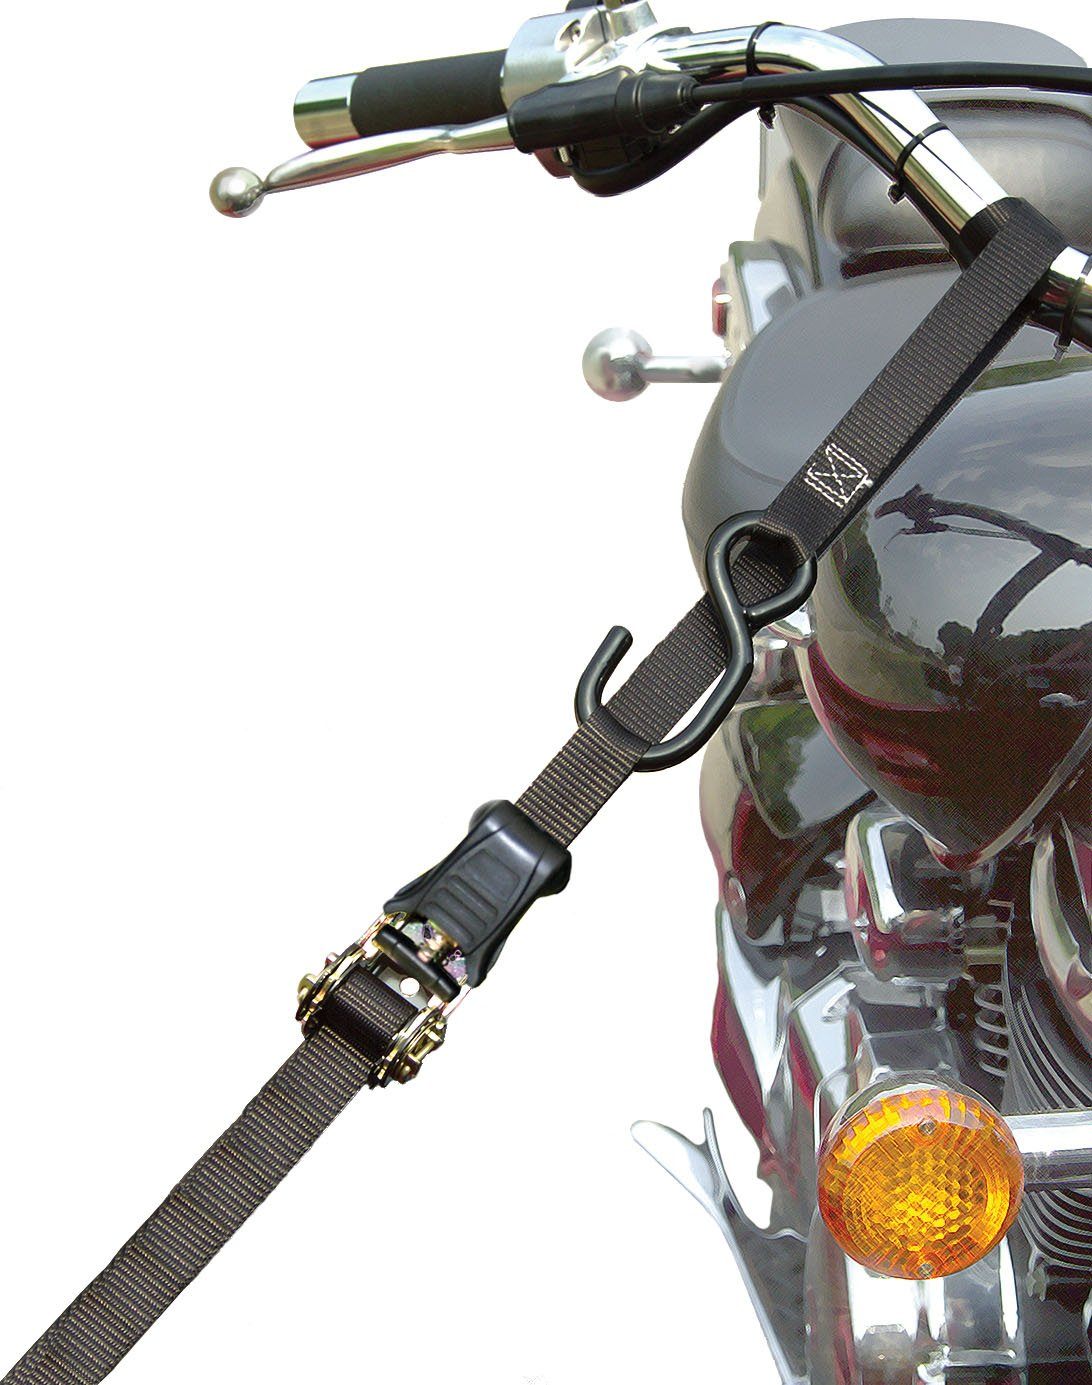 Pack of 2 Keeper 05721 8 Motorcycle and ATV Tie Down